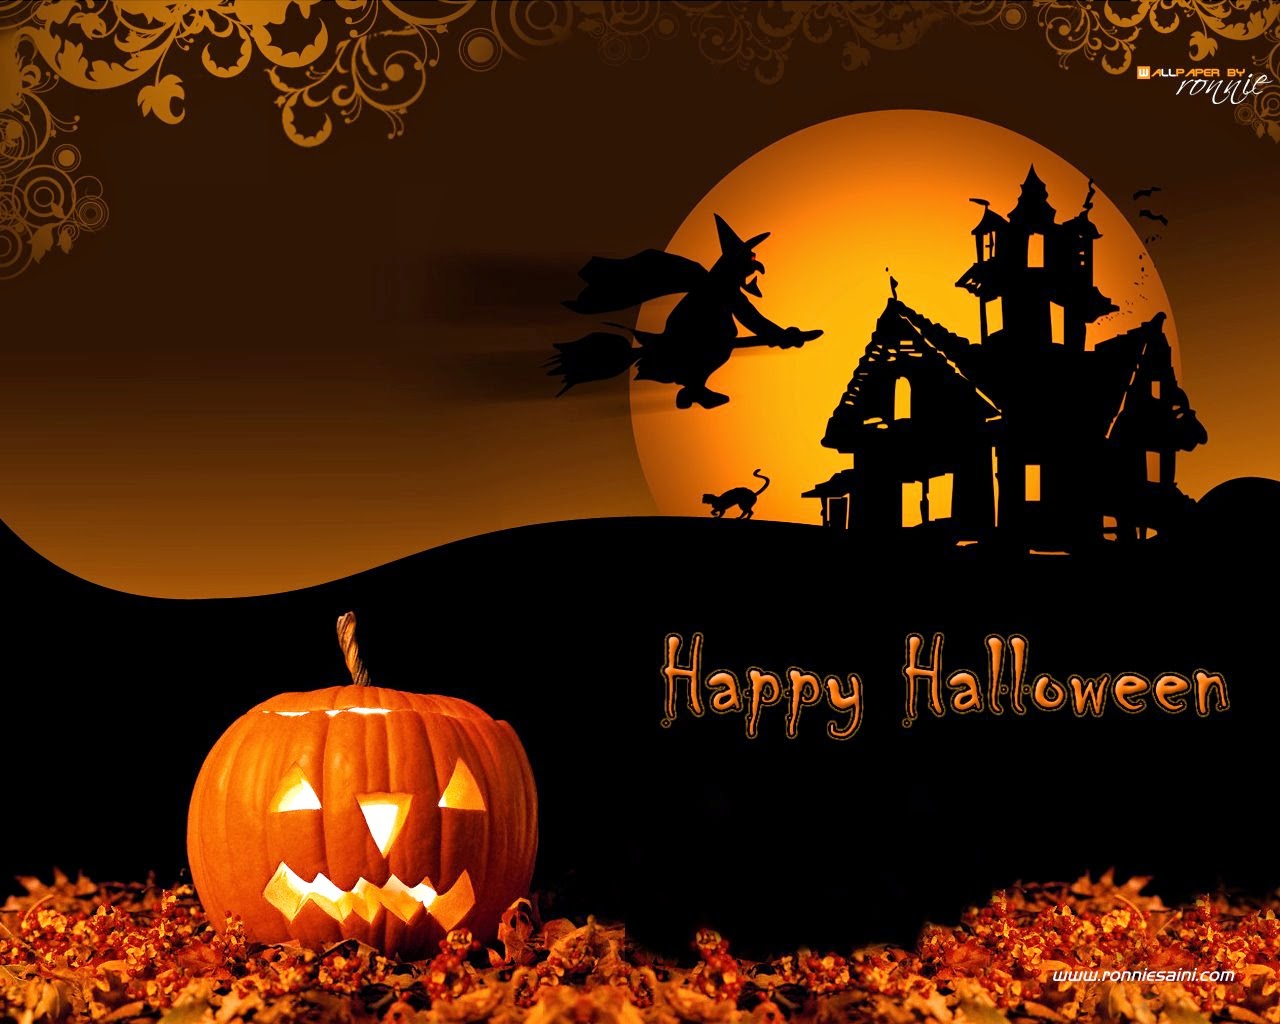 Halloween Day Wishes 2020: When is Halloween Day in 2015?